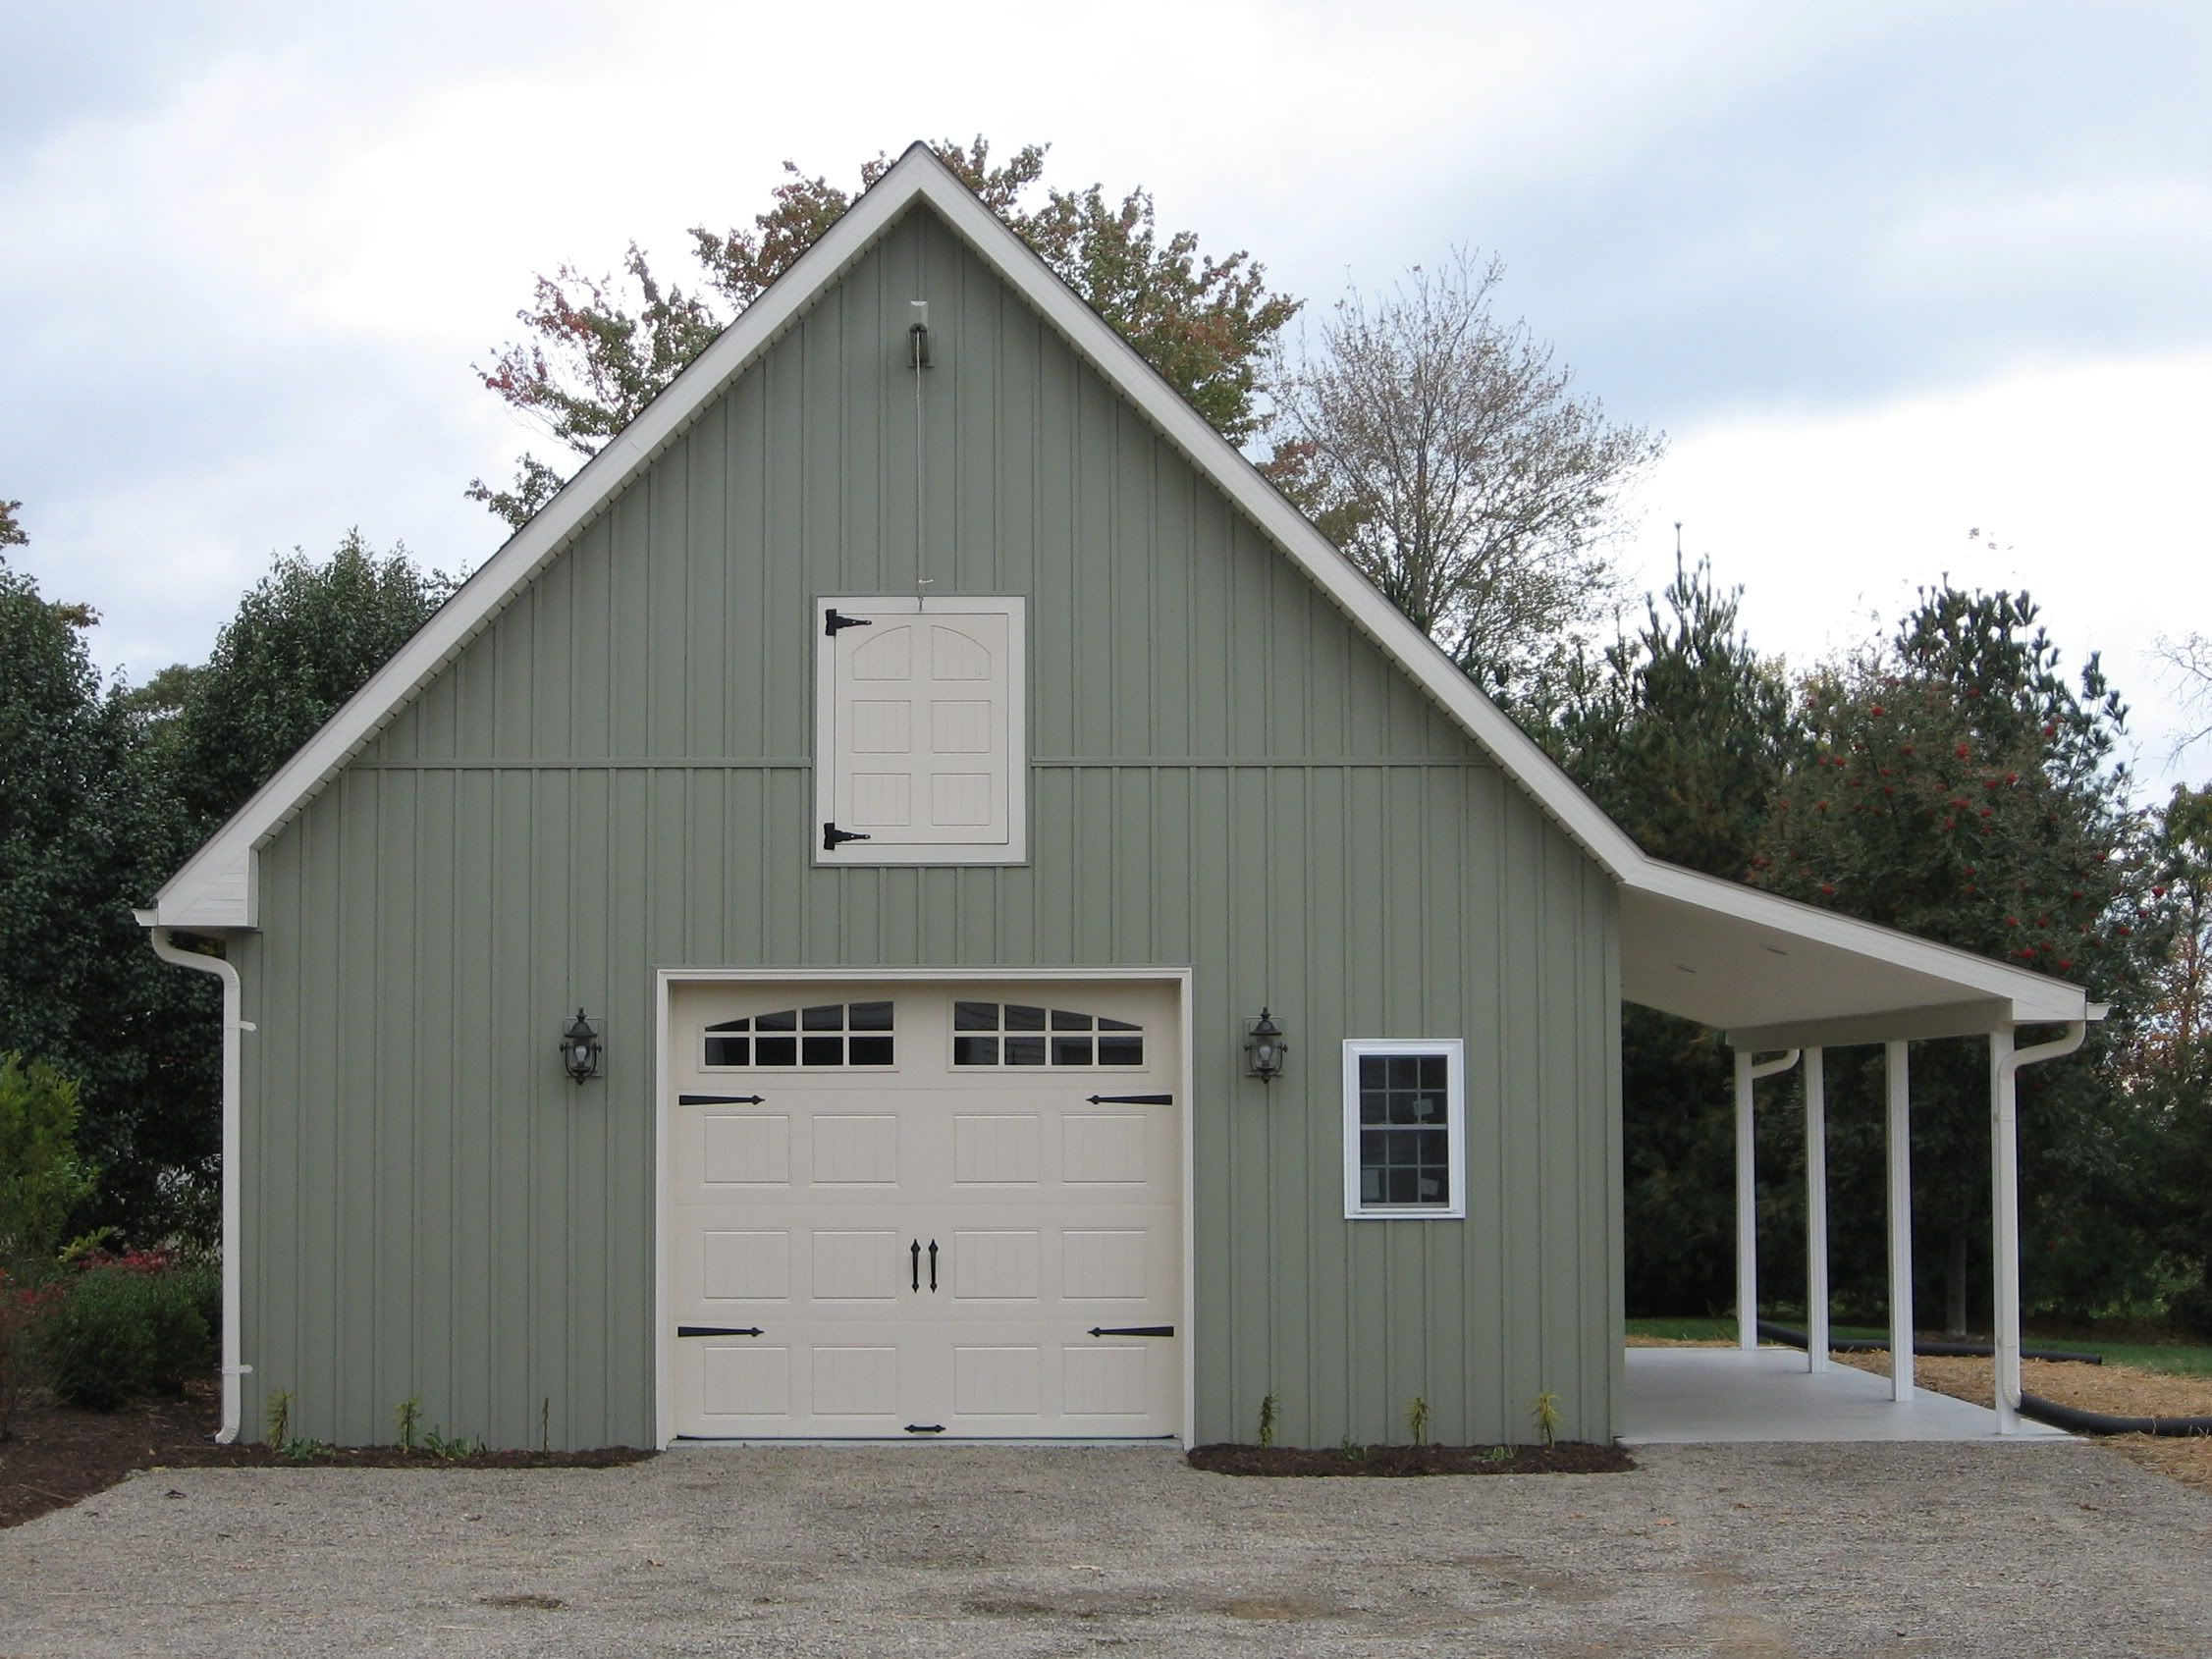 24 39 x 24 39 main garage body with an 8 39 x 9 39 overhead garage for Pole barn garage designs